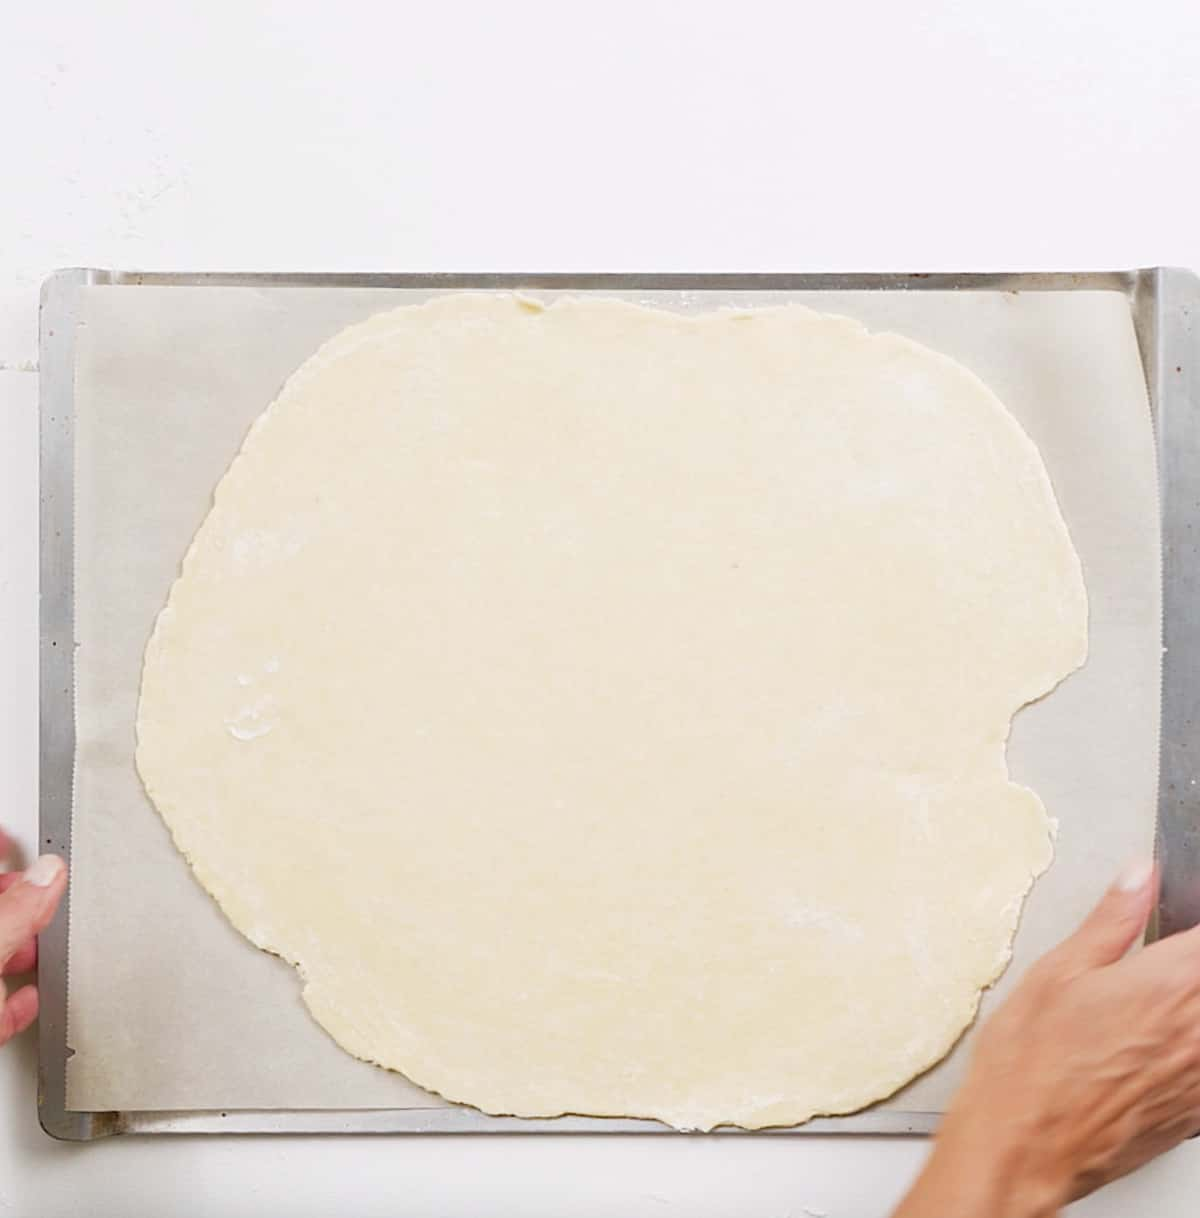 Flat round of rolled pie crust on parchment paper on metal baking sheet